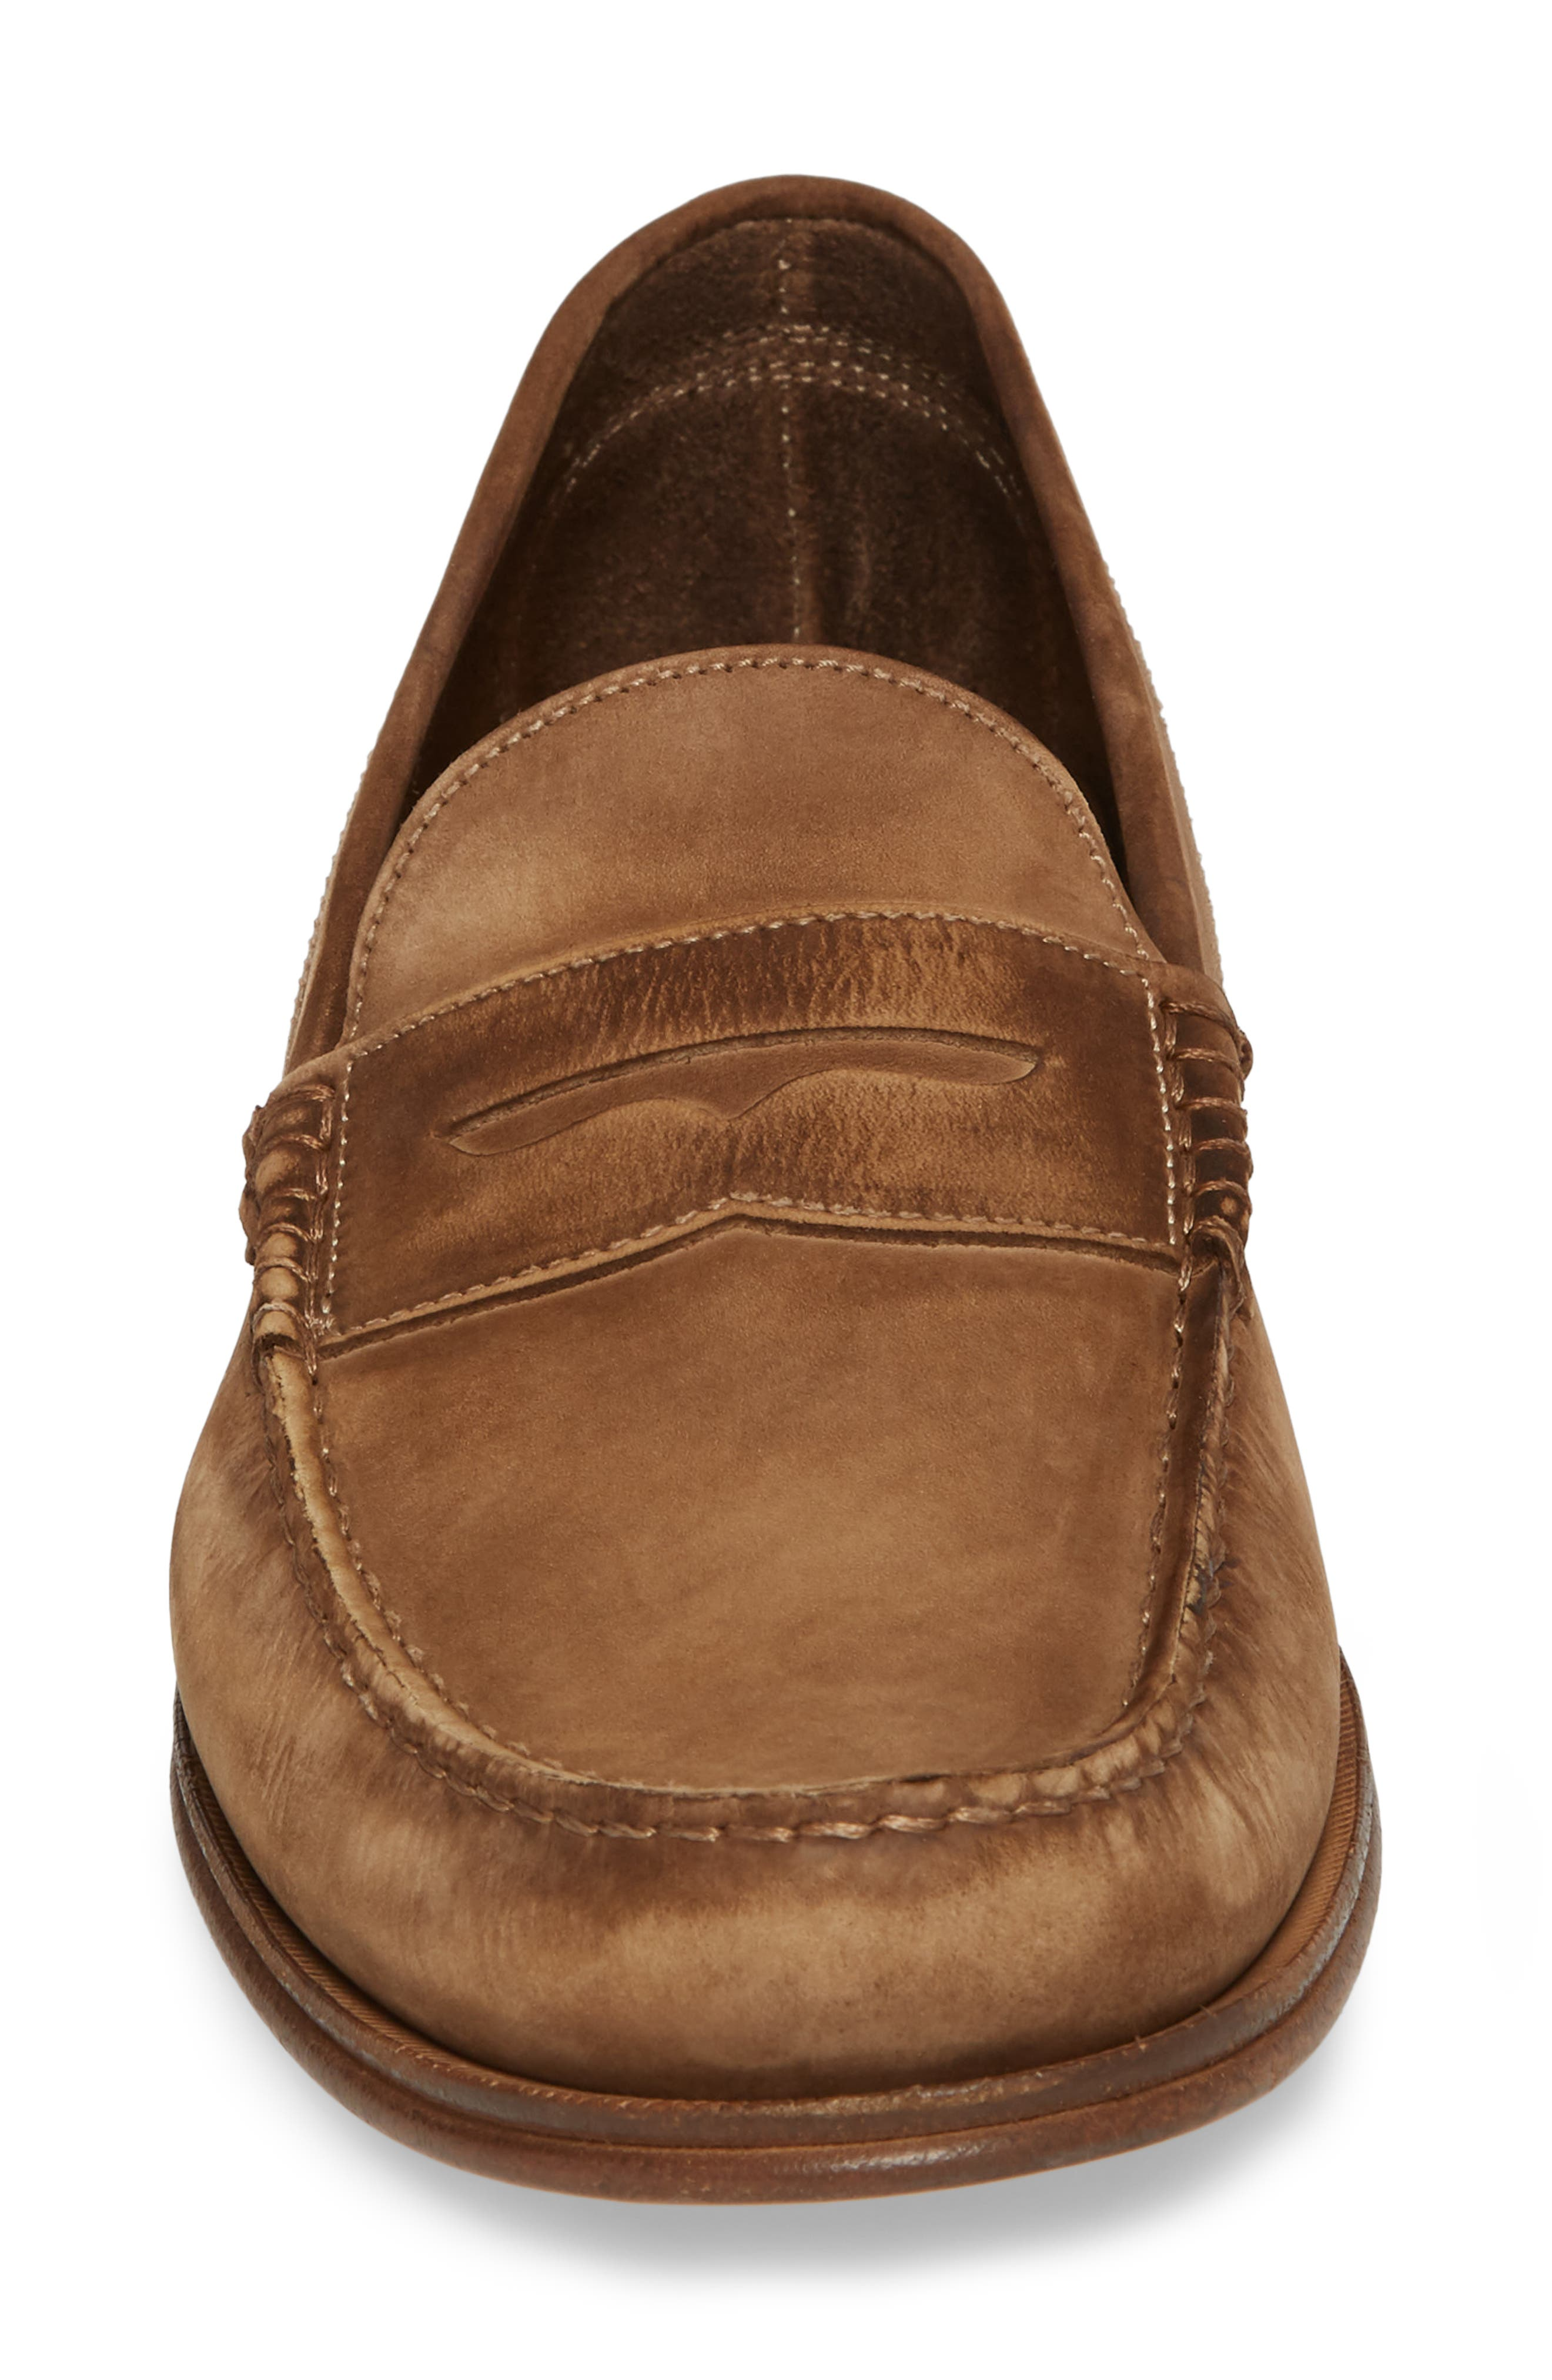 Nicola Penny Loafer,                             Alternate thumbnail 4, color,                             205